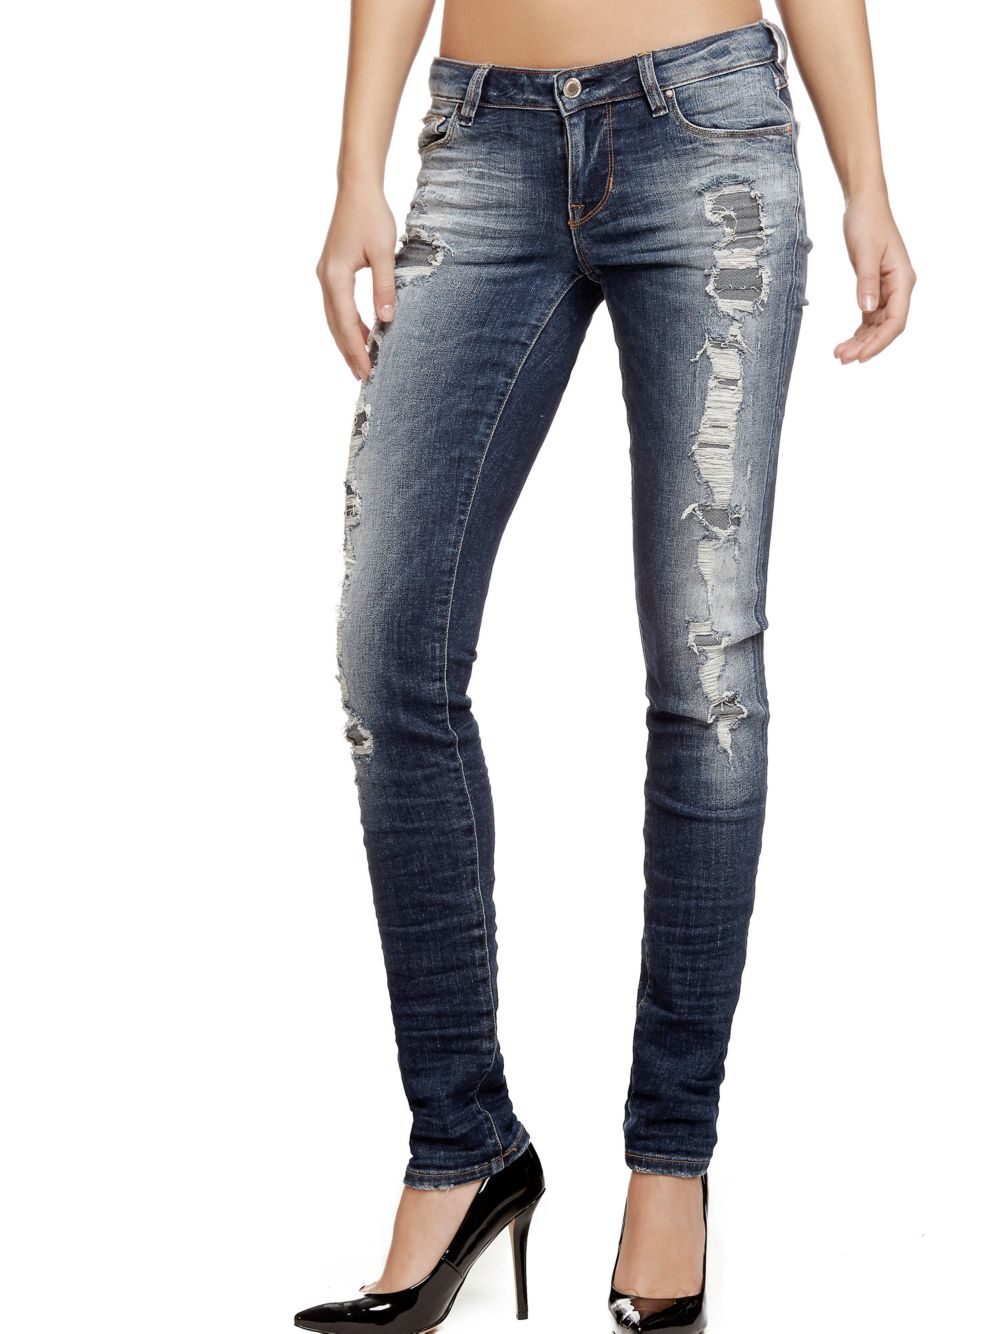 soldes jeans femme guess jean skinny abrasions guess ventes pas. Black Bedroom Furniture Sets. Home Design Ideas